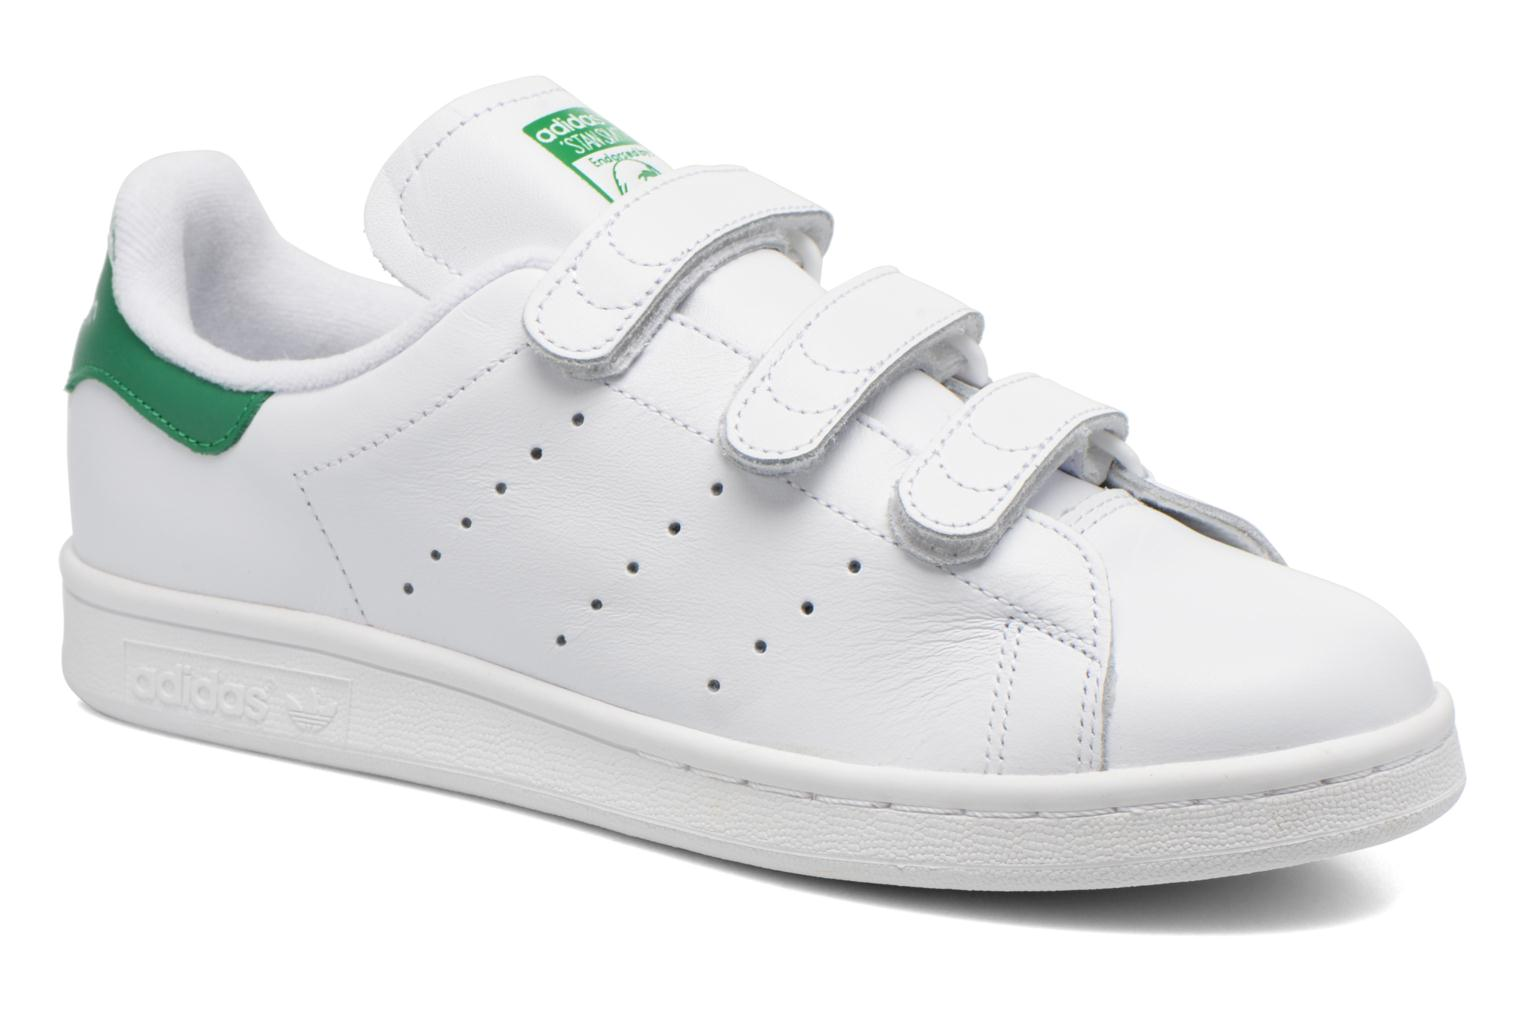 adidas stan smith groen 38